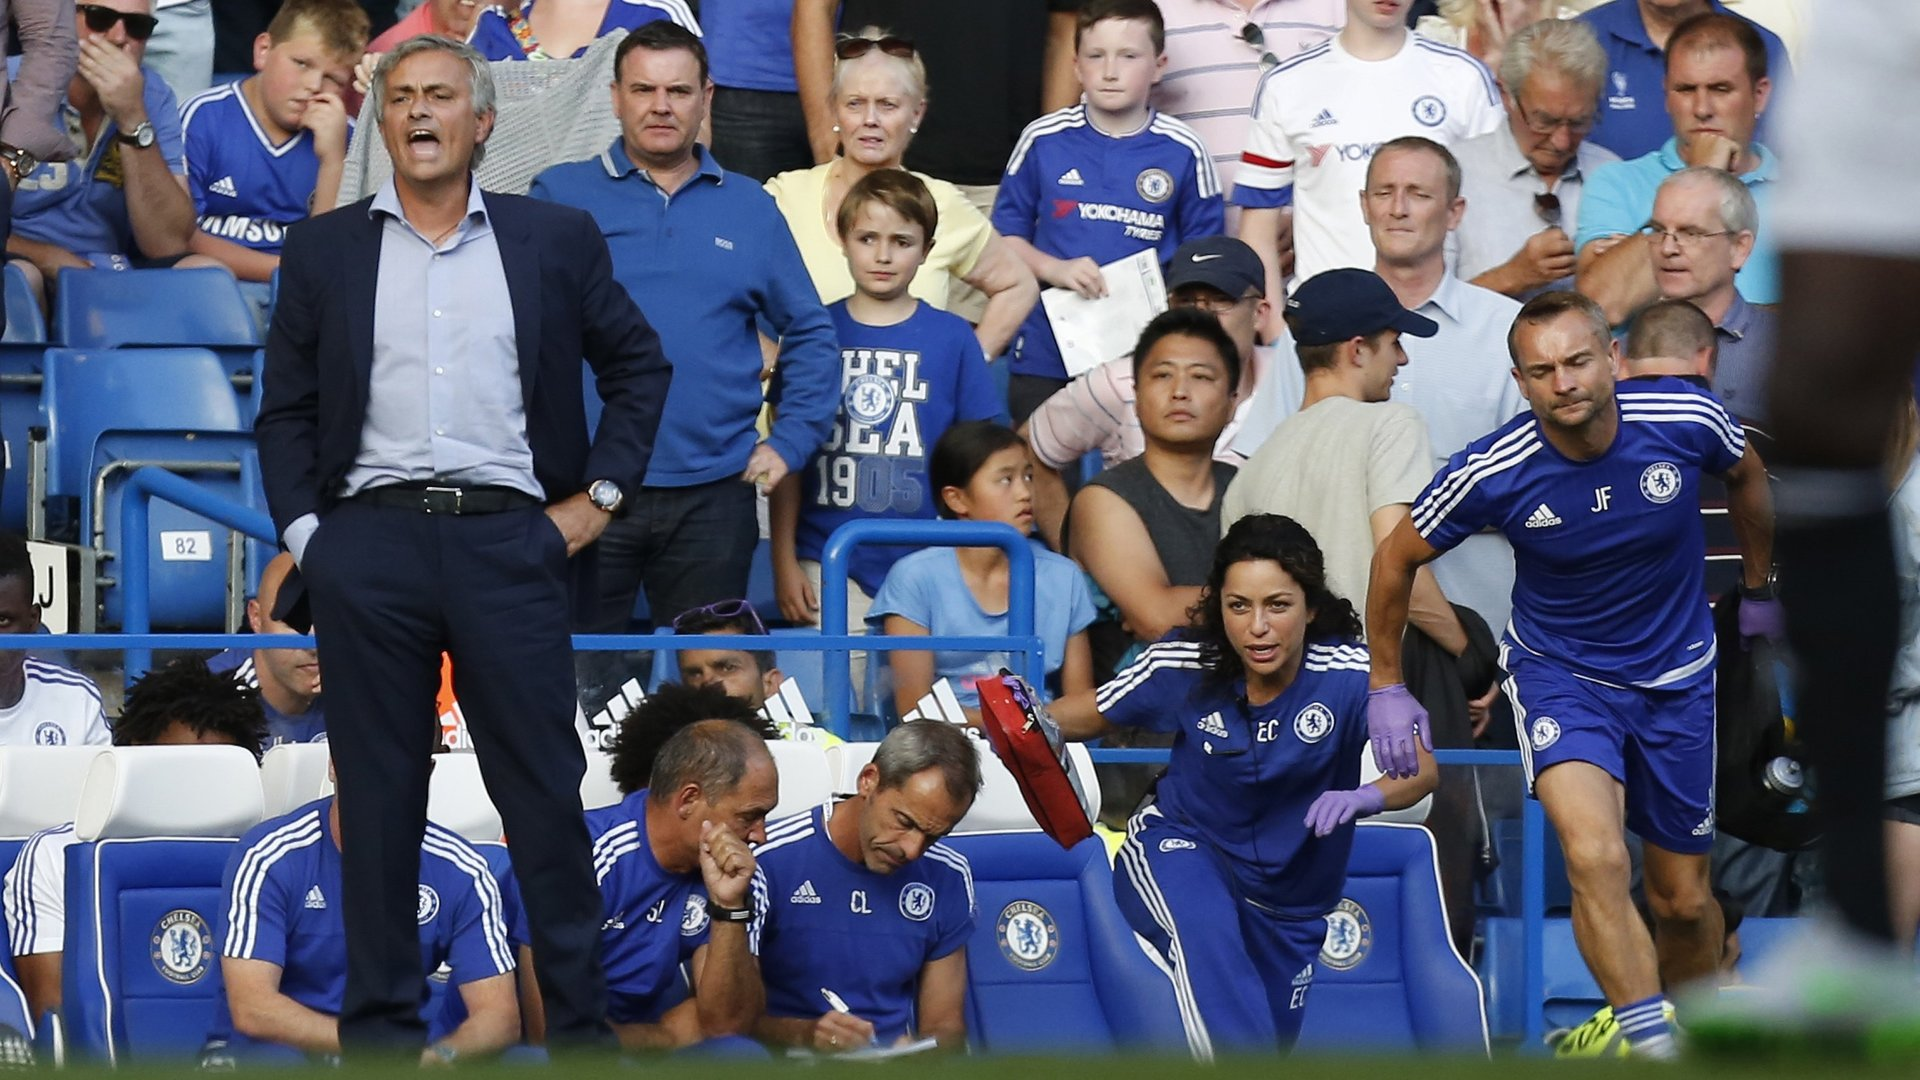 """Chelsea doctor (2R) Eva Carneiro and head physio Jon Fearn (R) leave the bench to treat Chelsea's Belgian midfielder Eden Hazard late in the game as Chelsea's Portuguese manager Jose Mourinho (L) gestures during the English Premier League football match between Chelsea and Swansea City at Stamford Bridge in London on August 8, 2015. Chelsea have sidelined team doctor Eva Carneiro from match-day duties after she fell foul of manager Jose Mourinho, according to British media reports on August 11, 2015. Mourinho criticised Carneiro after she ran on the pitch to treat Eden Hazard in stoppage time of Chelsea's 2-2 draw at home to Swansea City on August 8, saying she did not """"understand the game"""". AFP PHOTO / IAN KINGTON RESTRICTED TO EDITORIAL USE. No use with unauthorized audio, video, data, fixture lists, club/league logos or 'live' services. Online in-match use limited to 75 images, no video emulation. No use in betting, games or single club/league/player publications. (Photo credit should read IAN KINGTON/AFP/Getty Images)"""